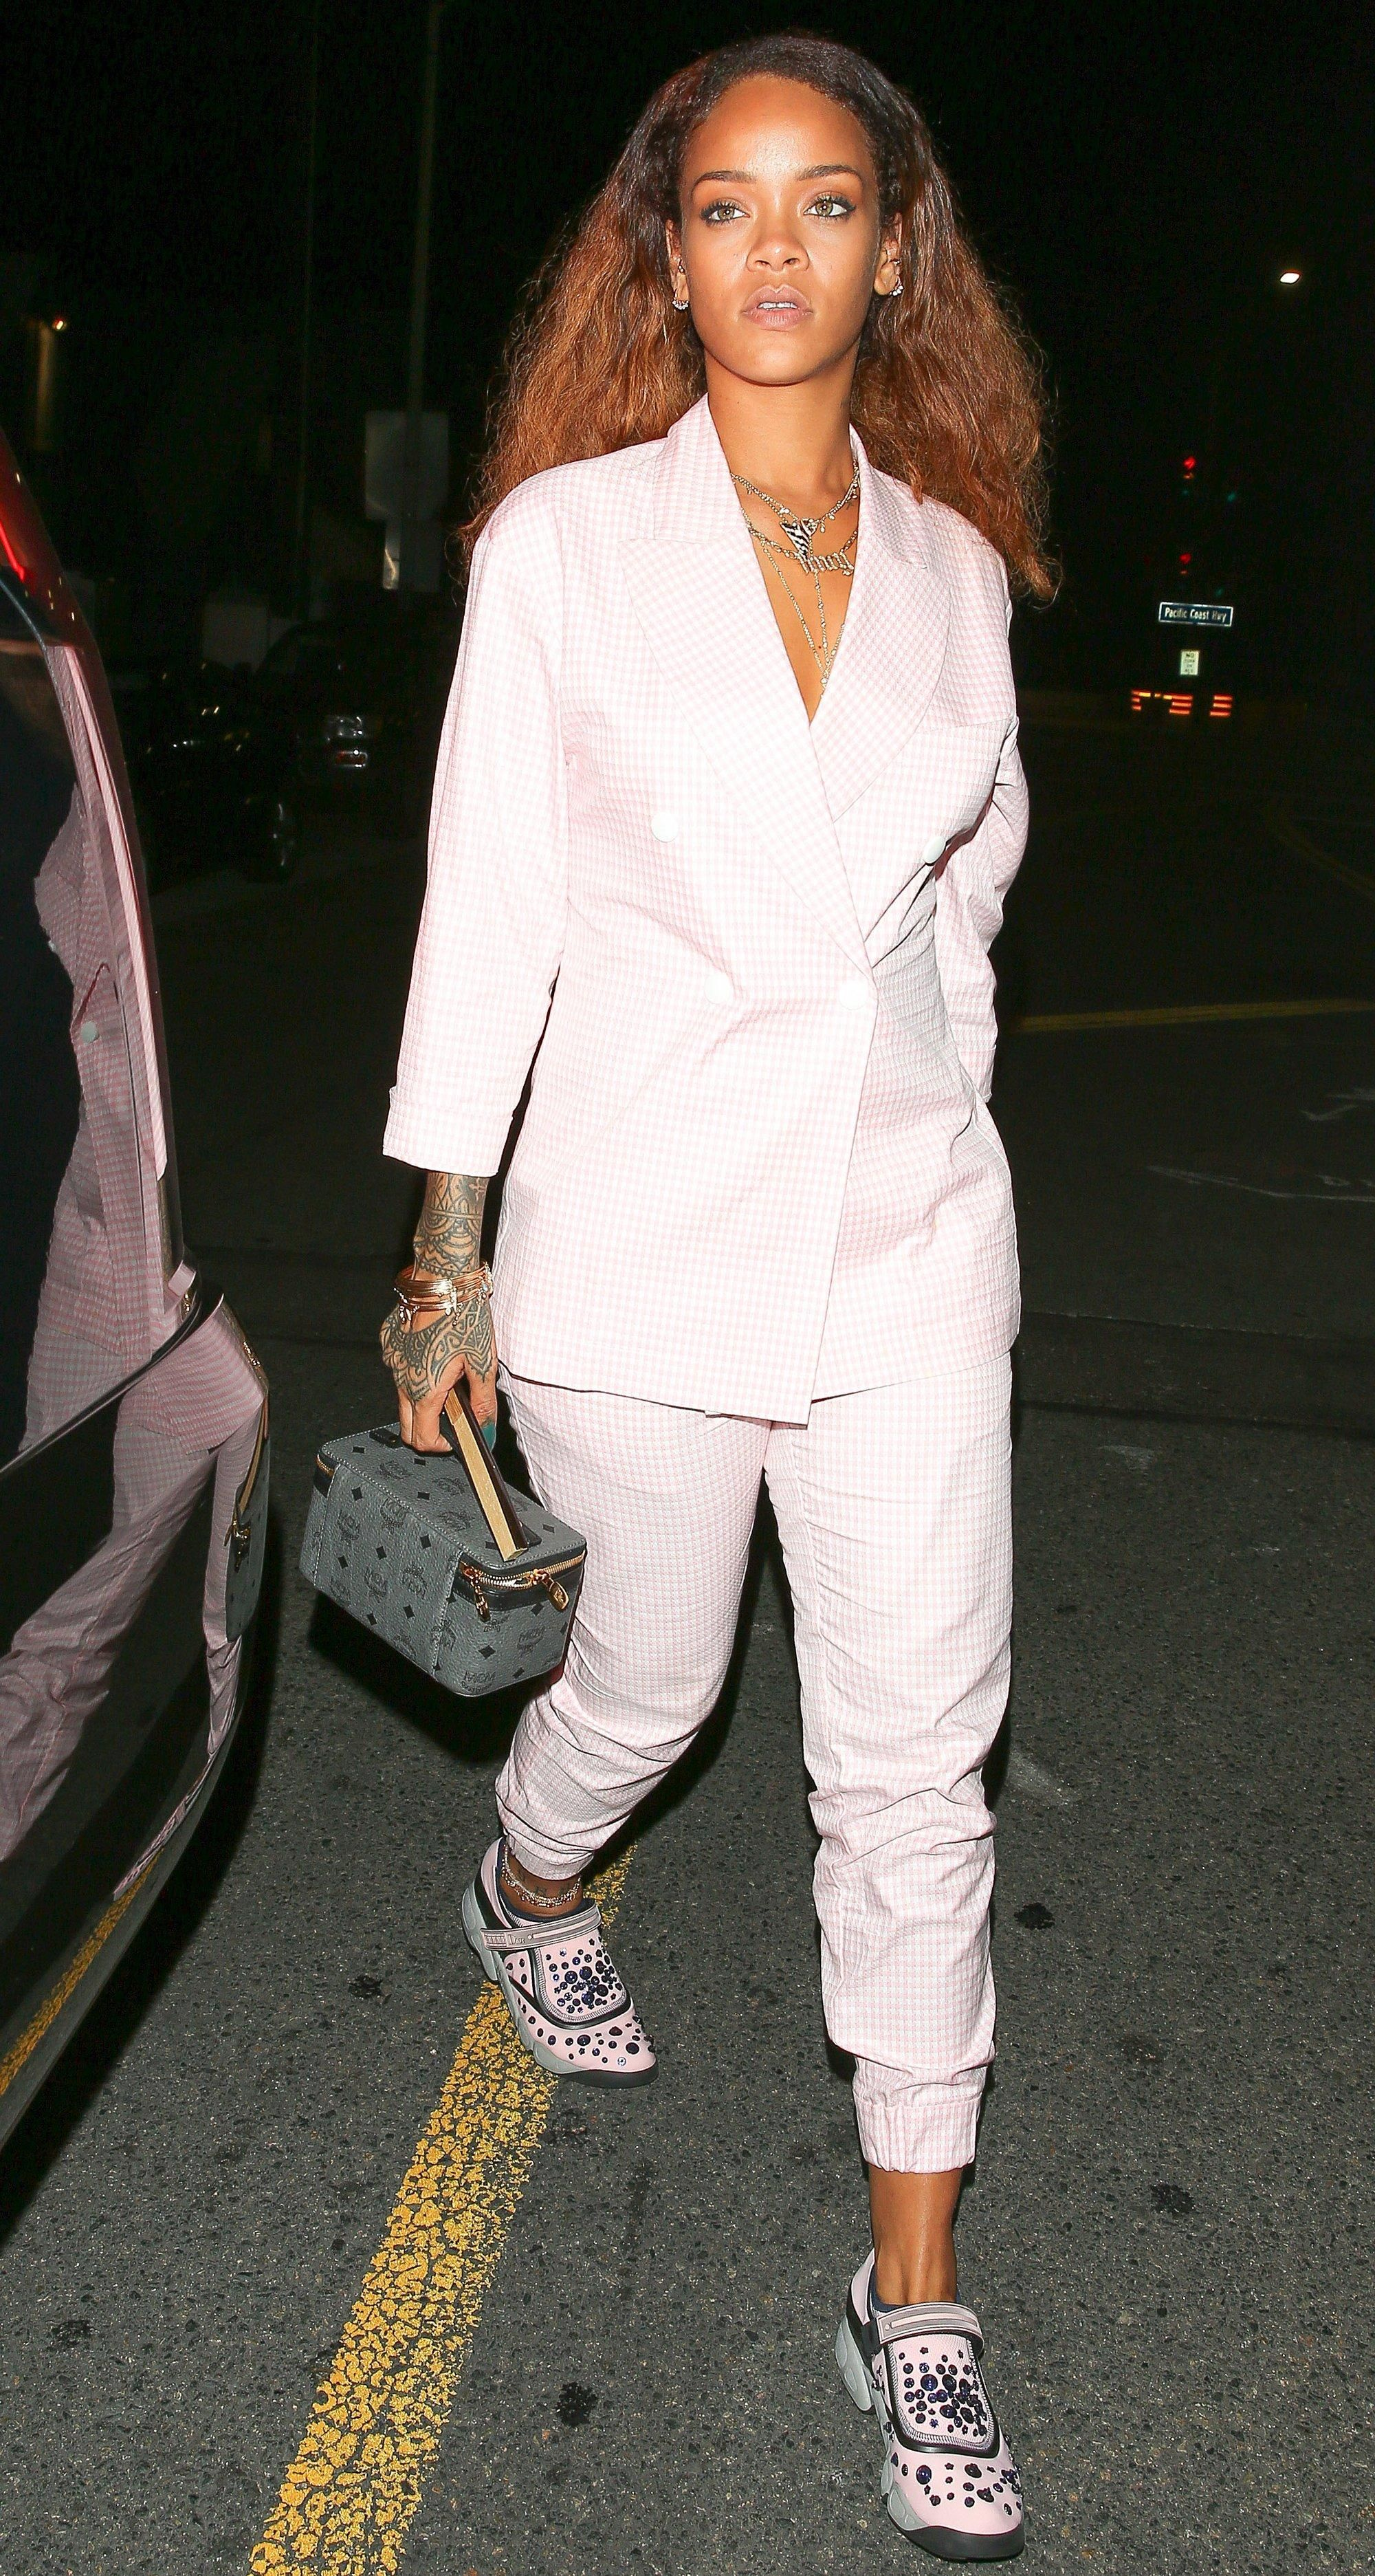 Rihanna in a pink gingham suit, Dior Shoes, and a gray MCM bag